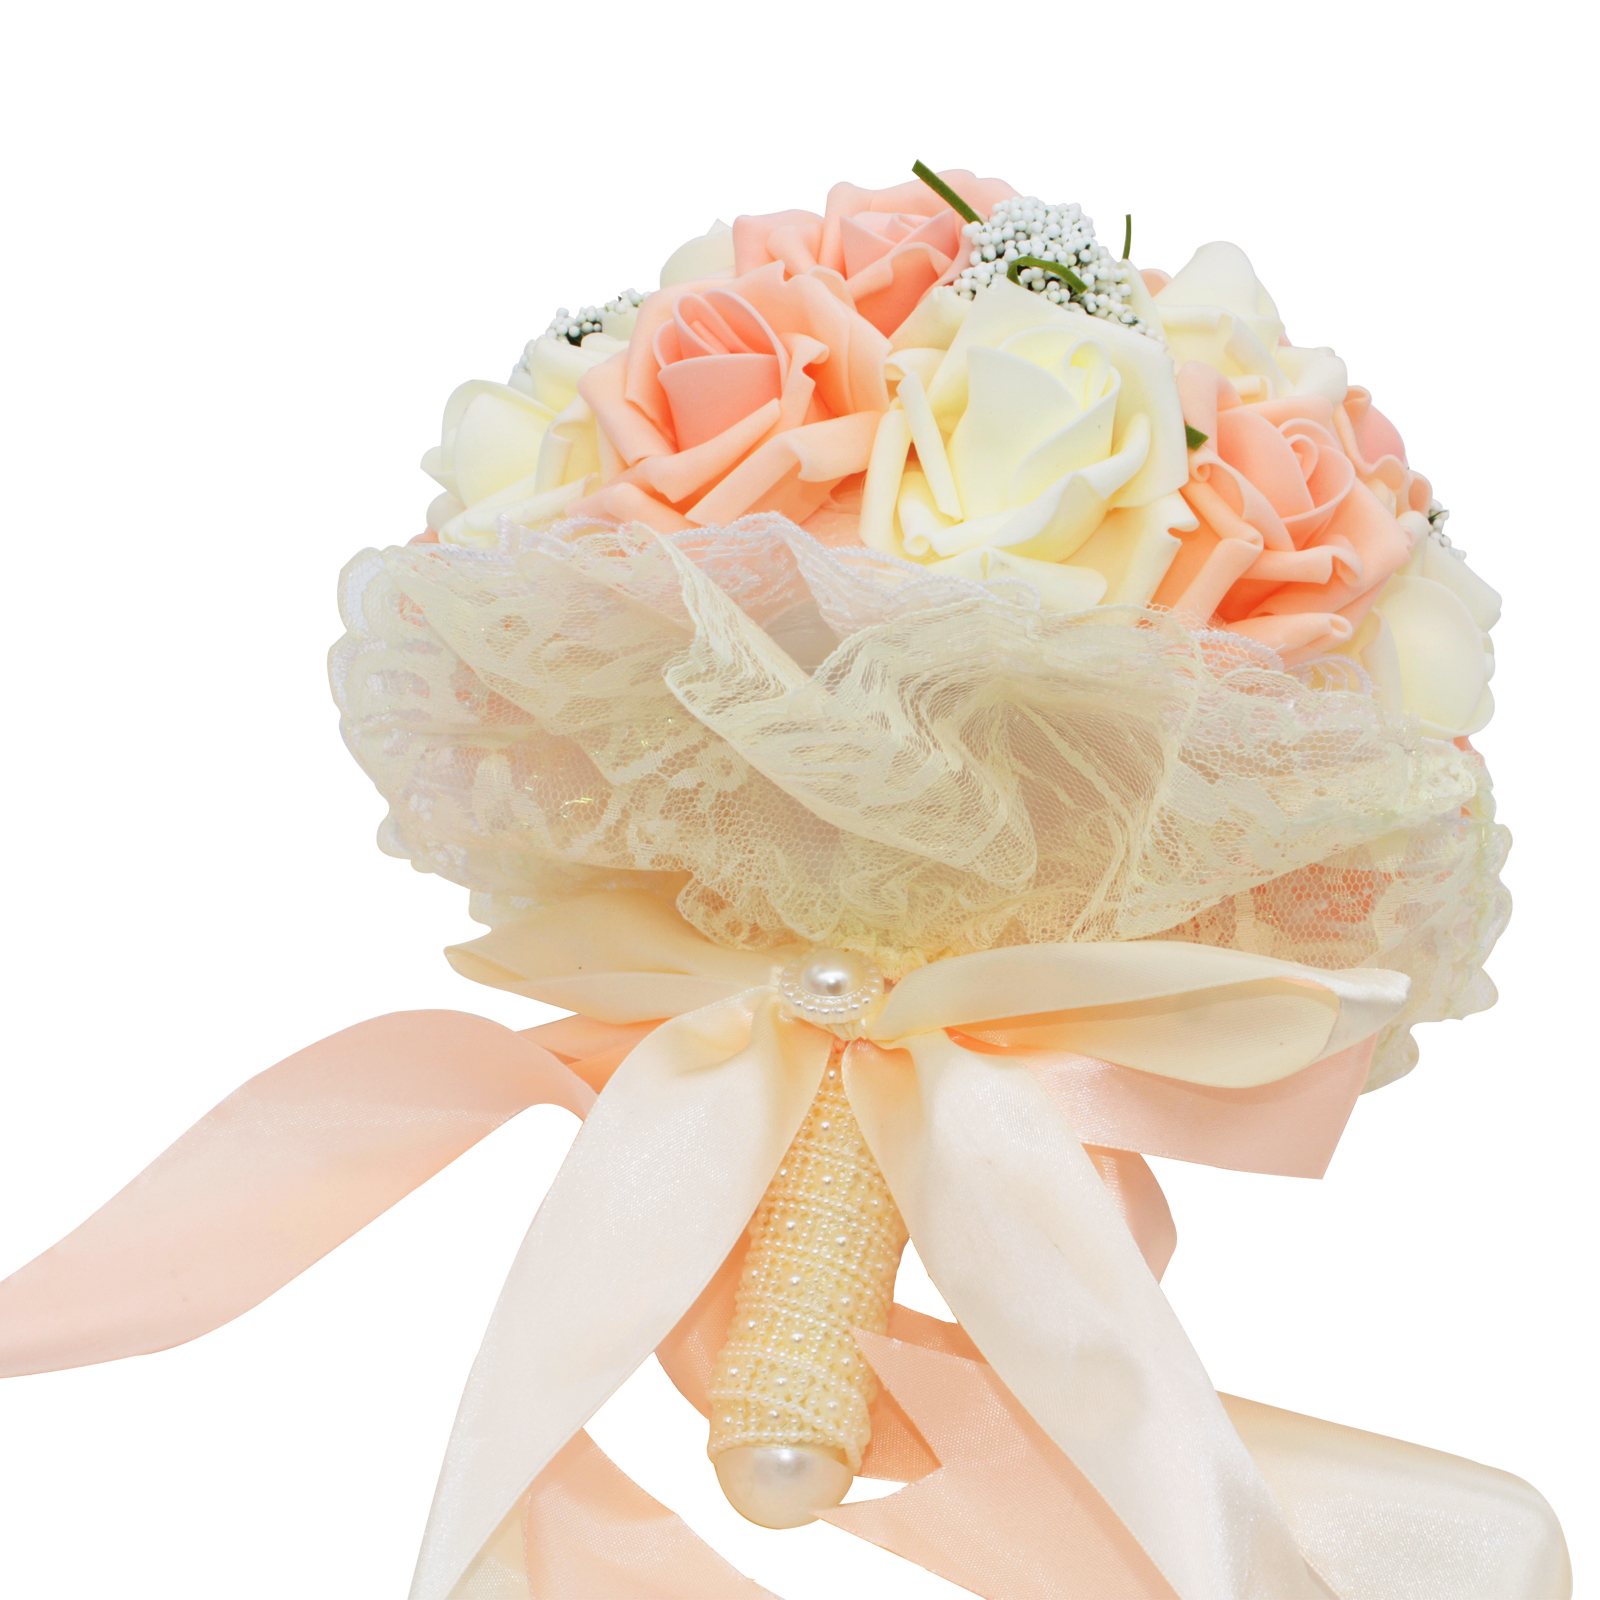 Artificial silk flowers bouquet foam roses wedding bouquet bridal artificial silk flowers bouquet foam roses wedding bouquet bridal bridesmaid bouquet lace decoration wedding flowers ivory pink in artificial dried izmirmasajfo